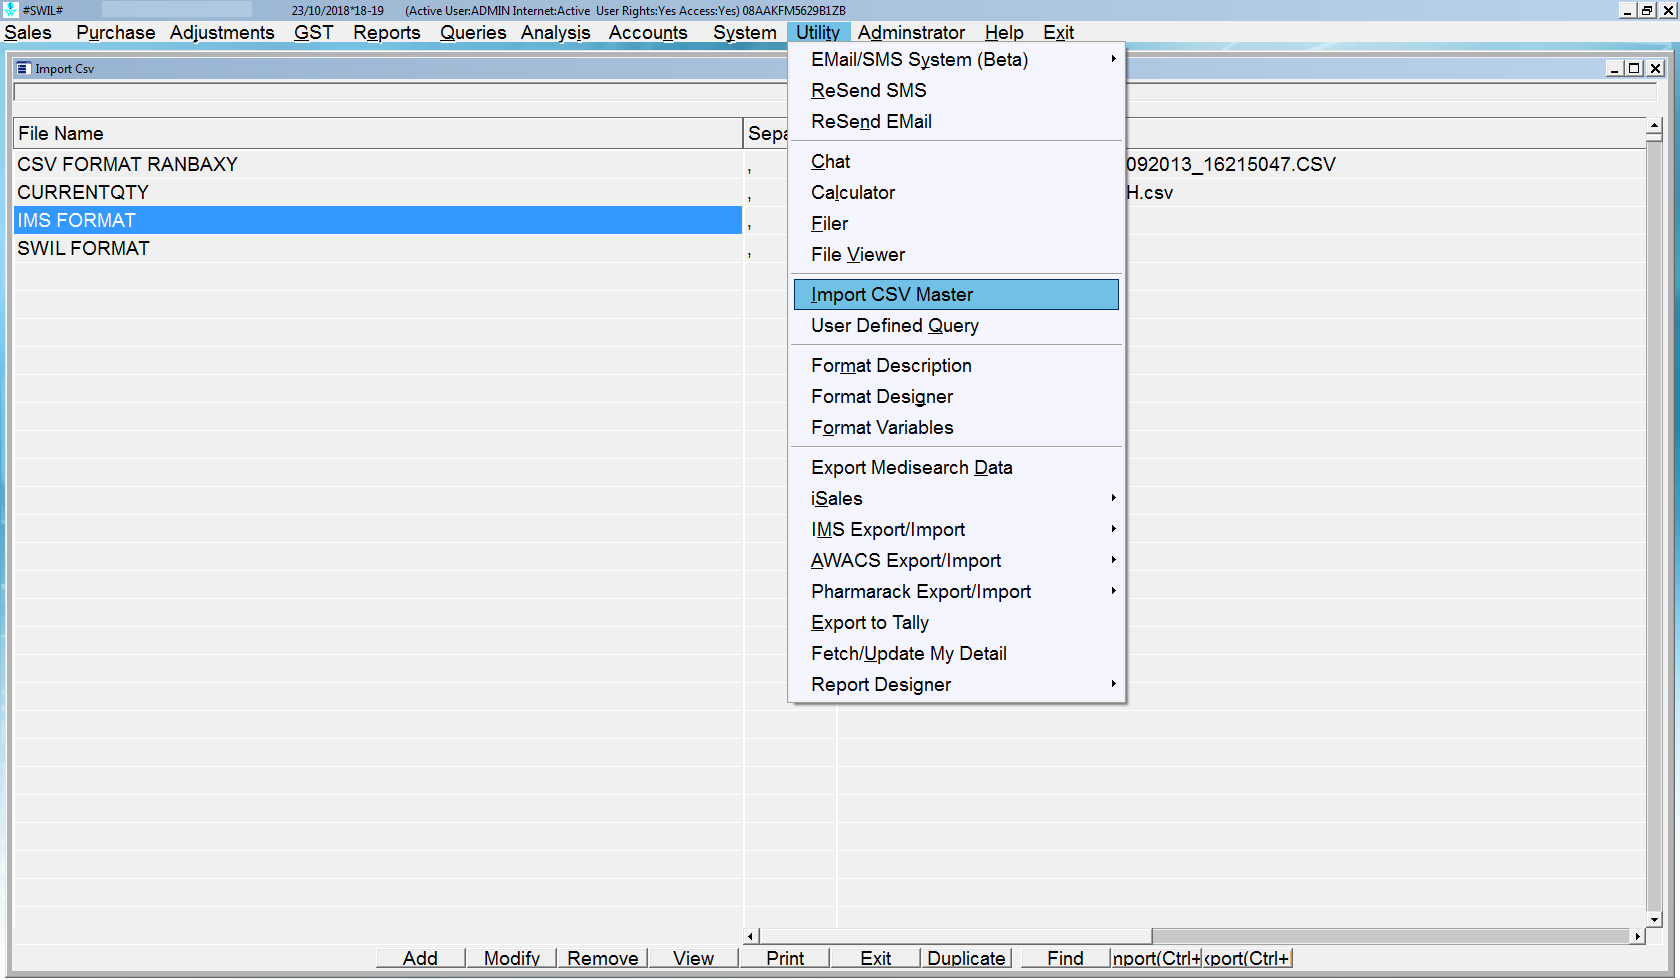 How to Import Purchase through CSV file in Unisolve / Cross